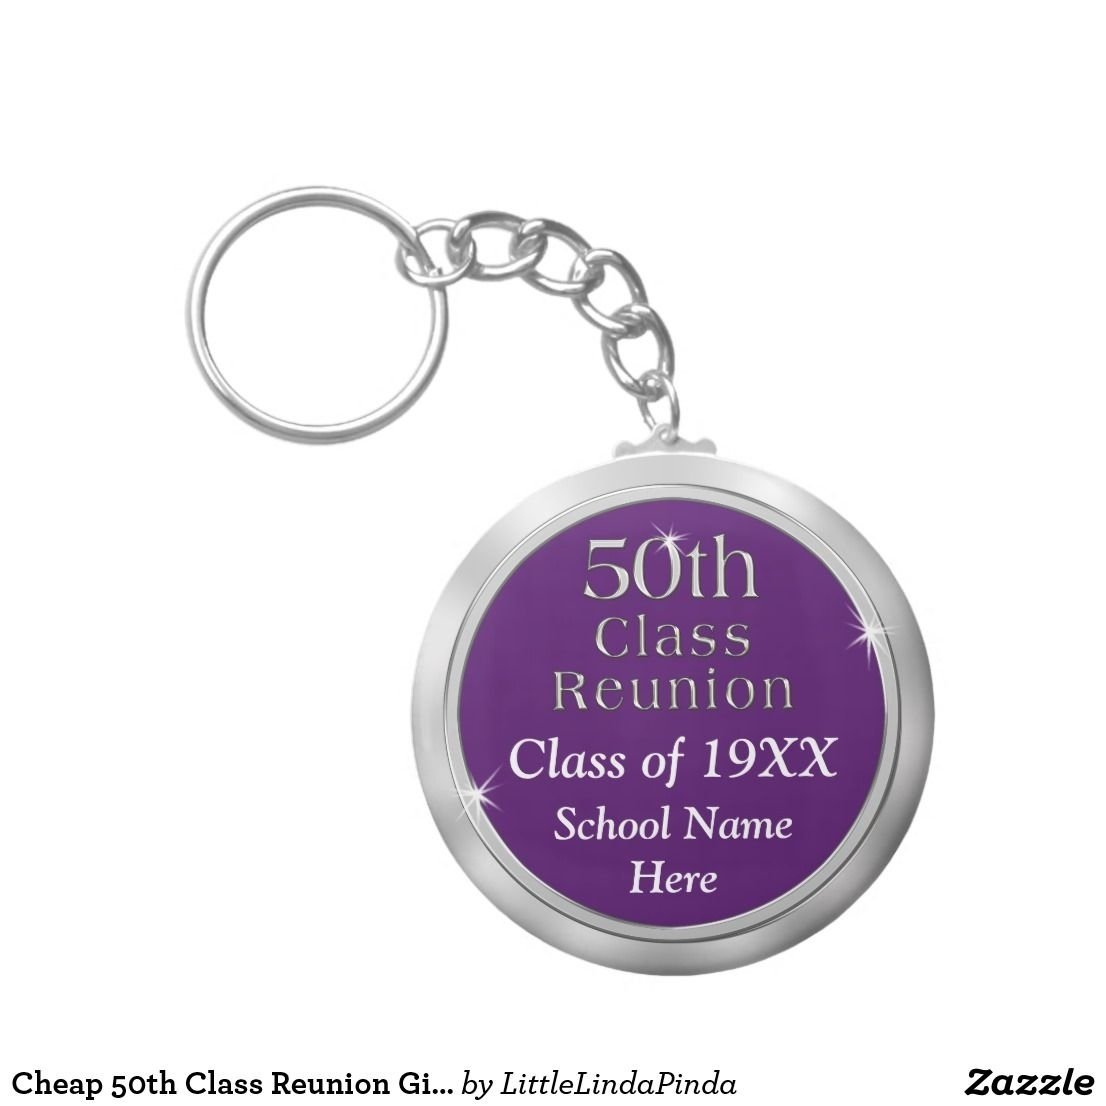 10 Unique Class Reunion Ideas 50 Years cheap 50th class reunion gift your text and color keychain class 2020